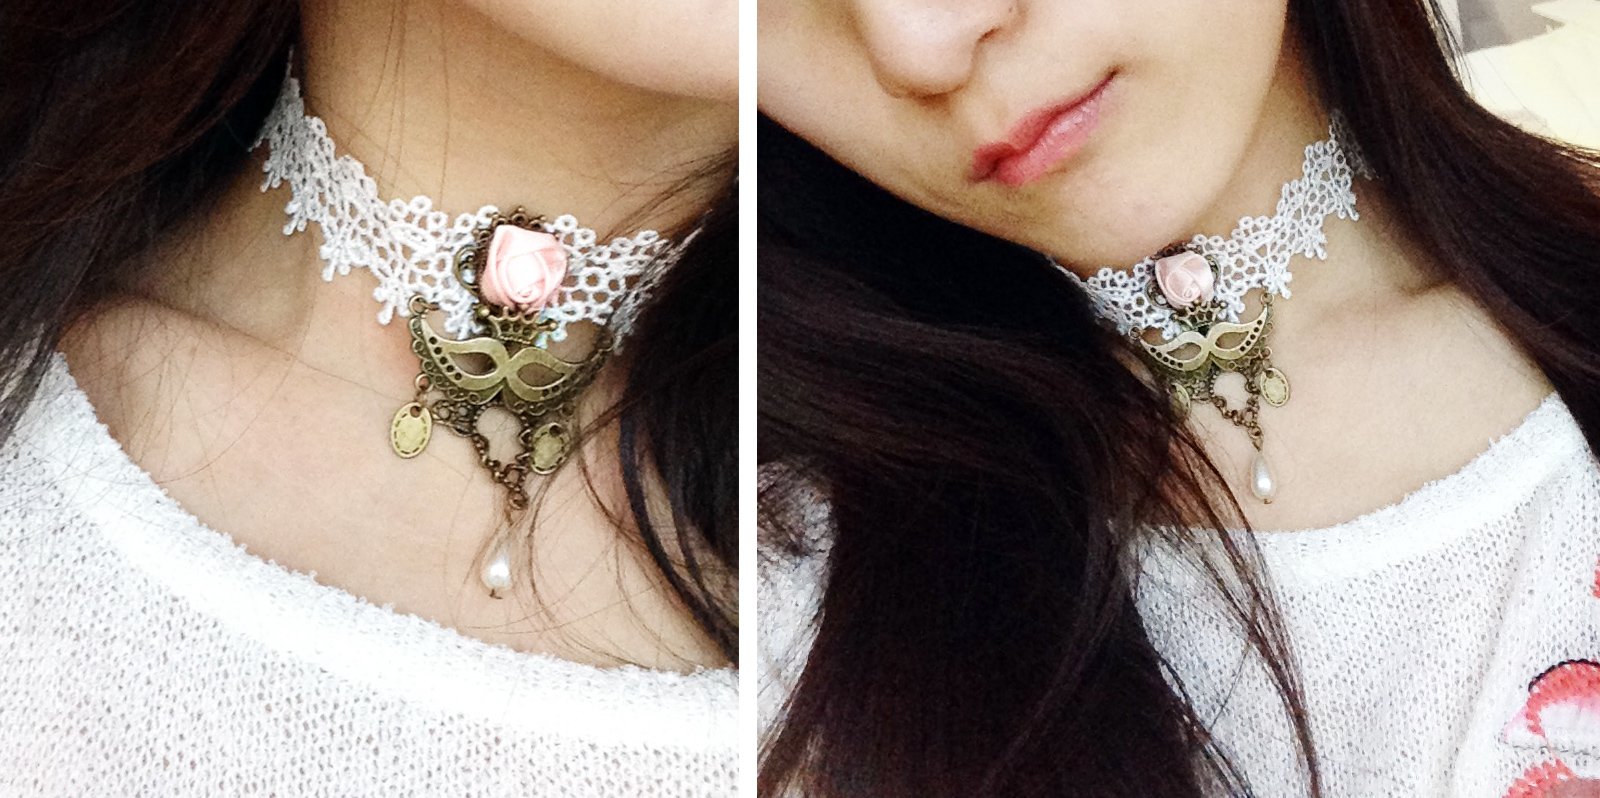 Photos of Born Pretty Store's lolita lace choker when worn. Has a delicate pearl, embroidered metal, and rose.